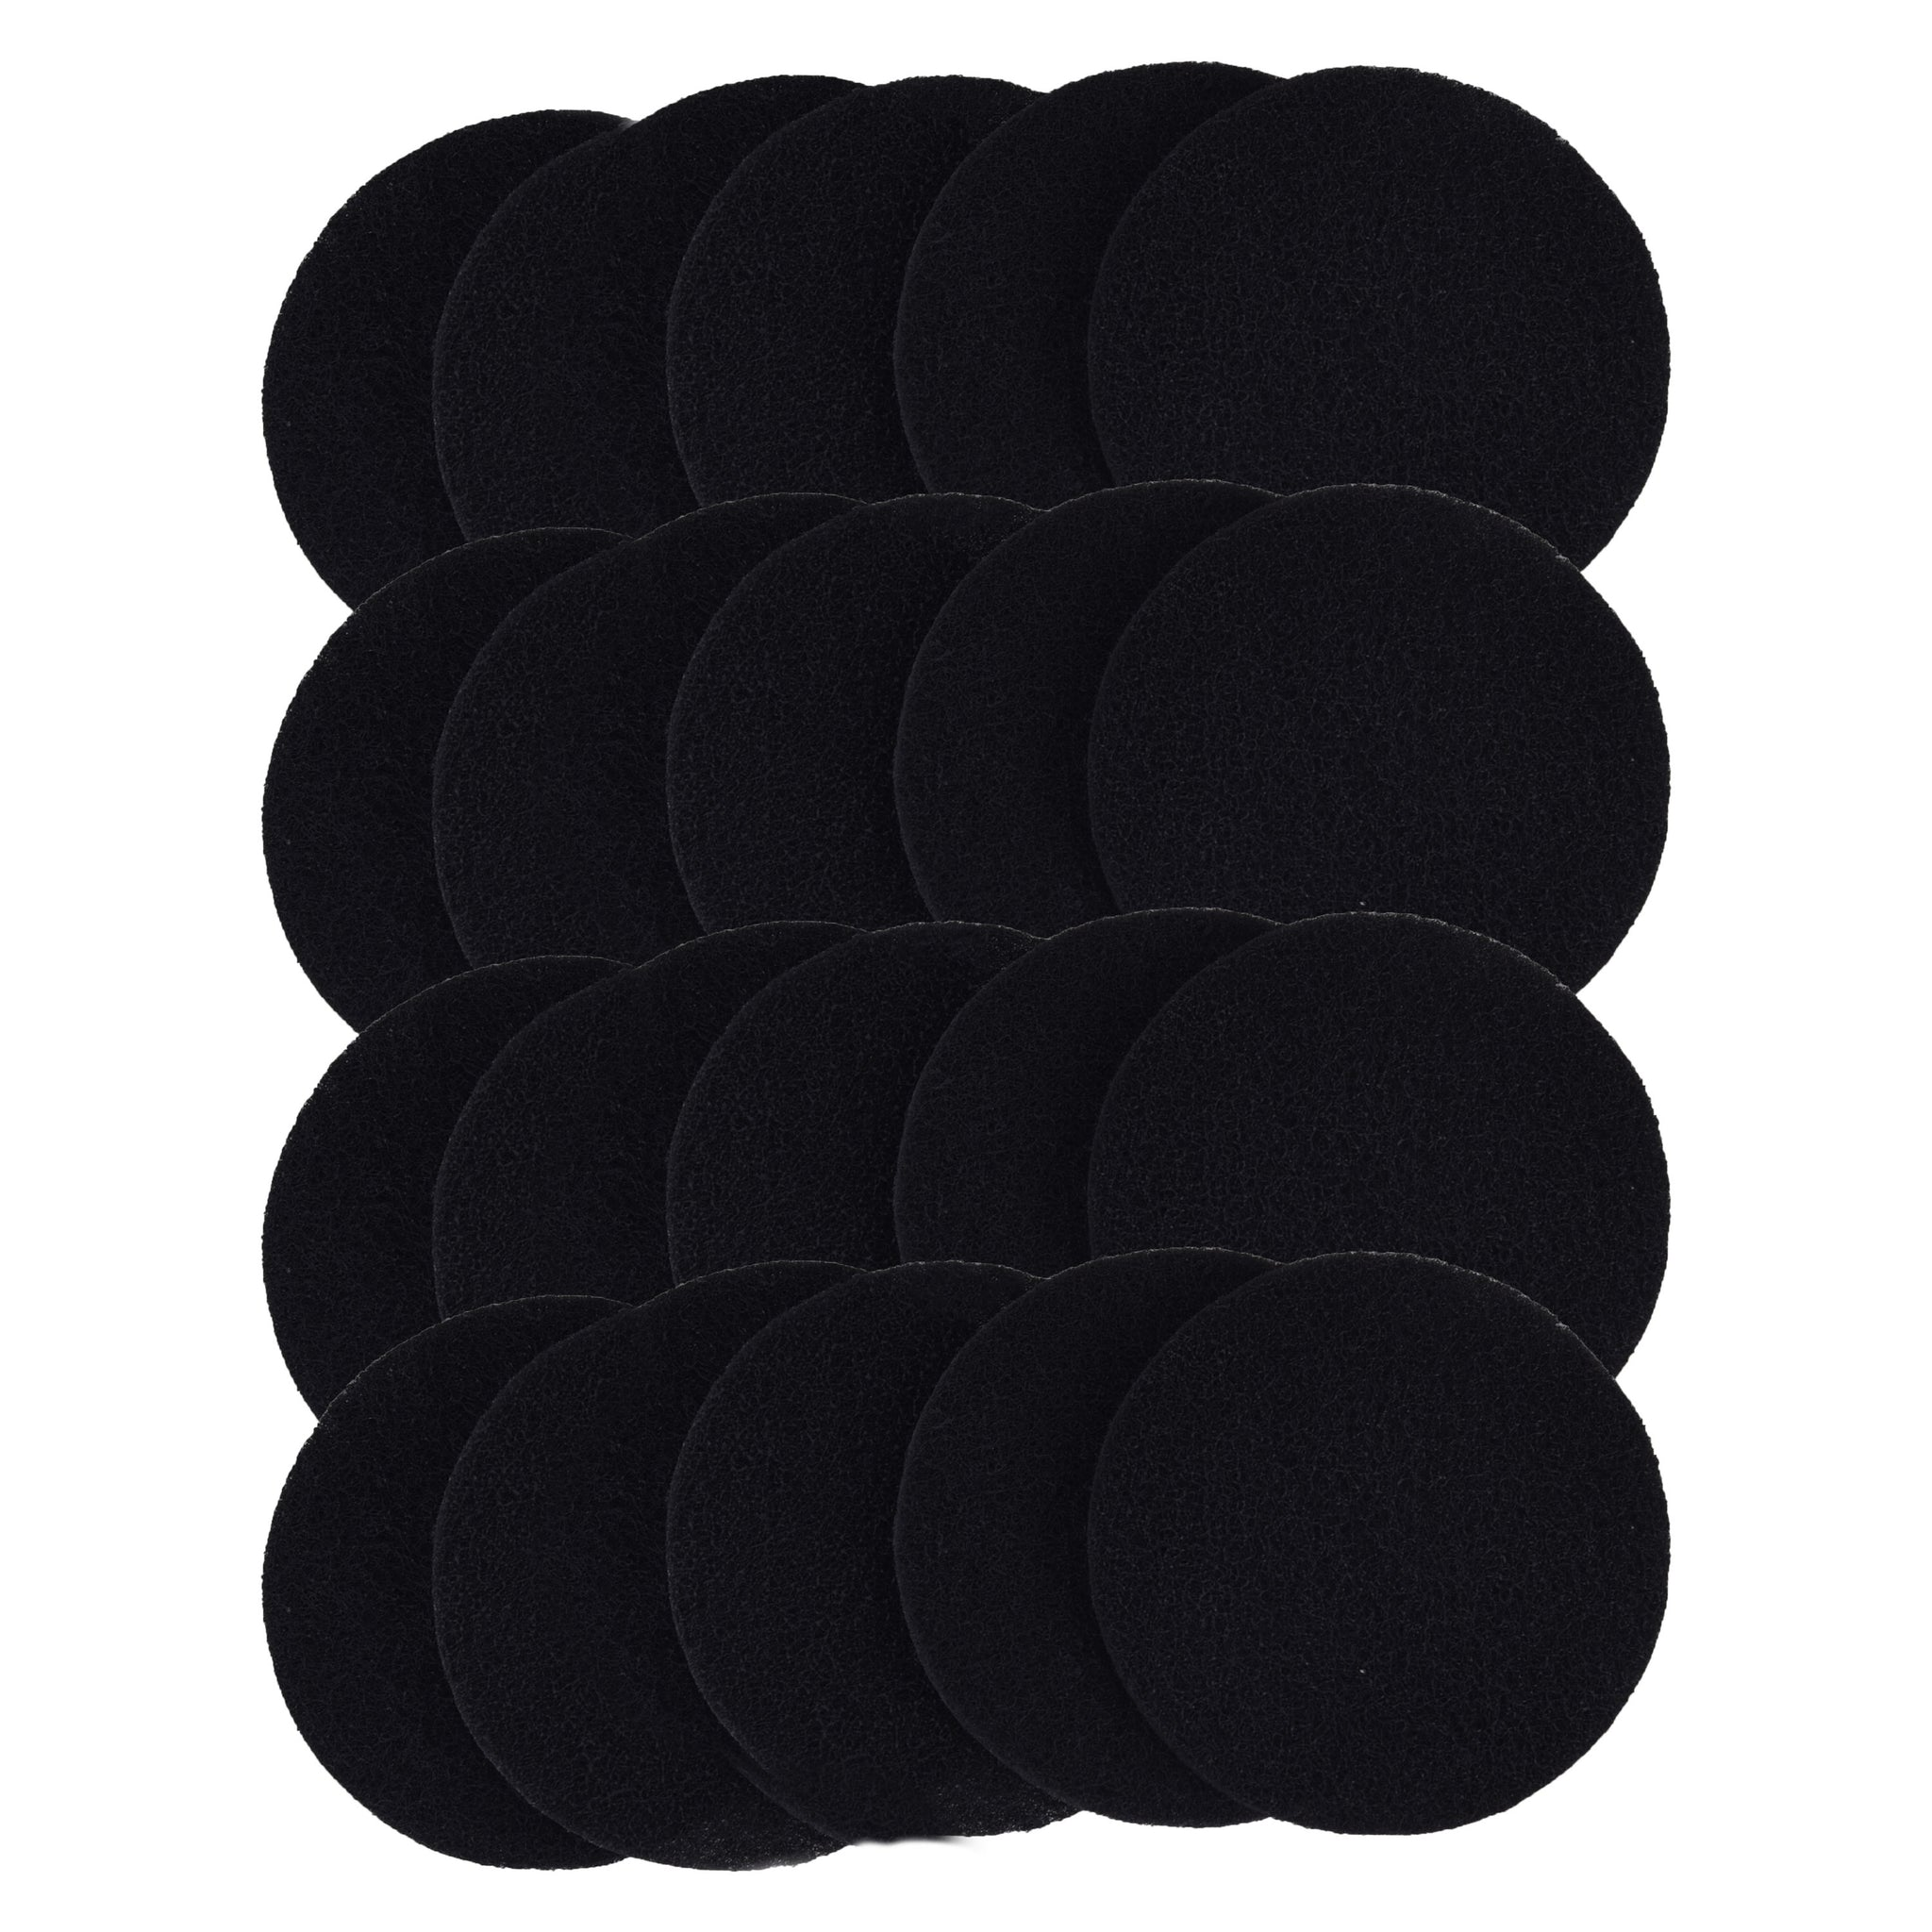 Set of 20 Carbon Filters